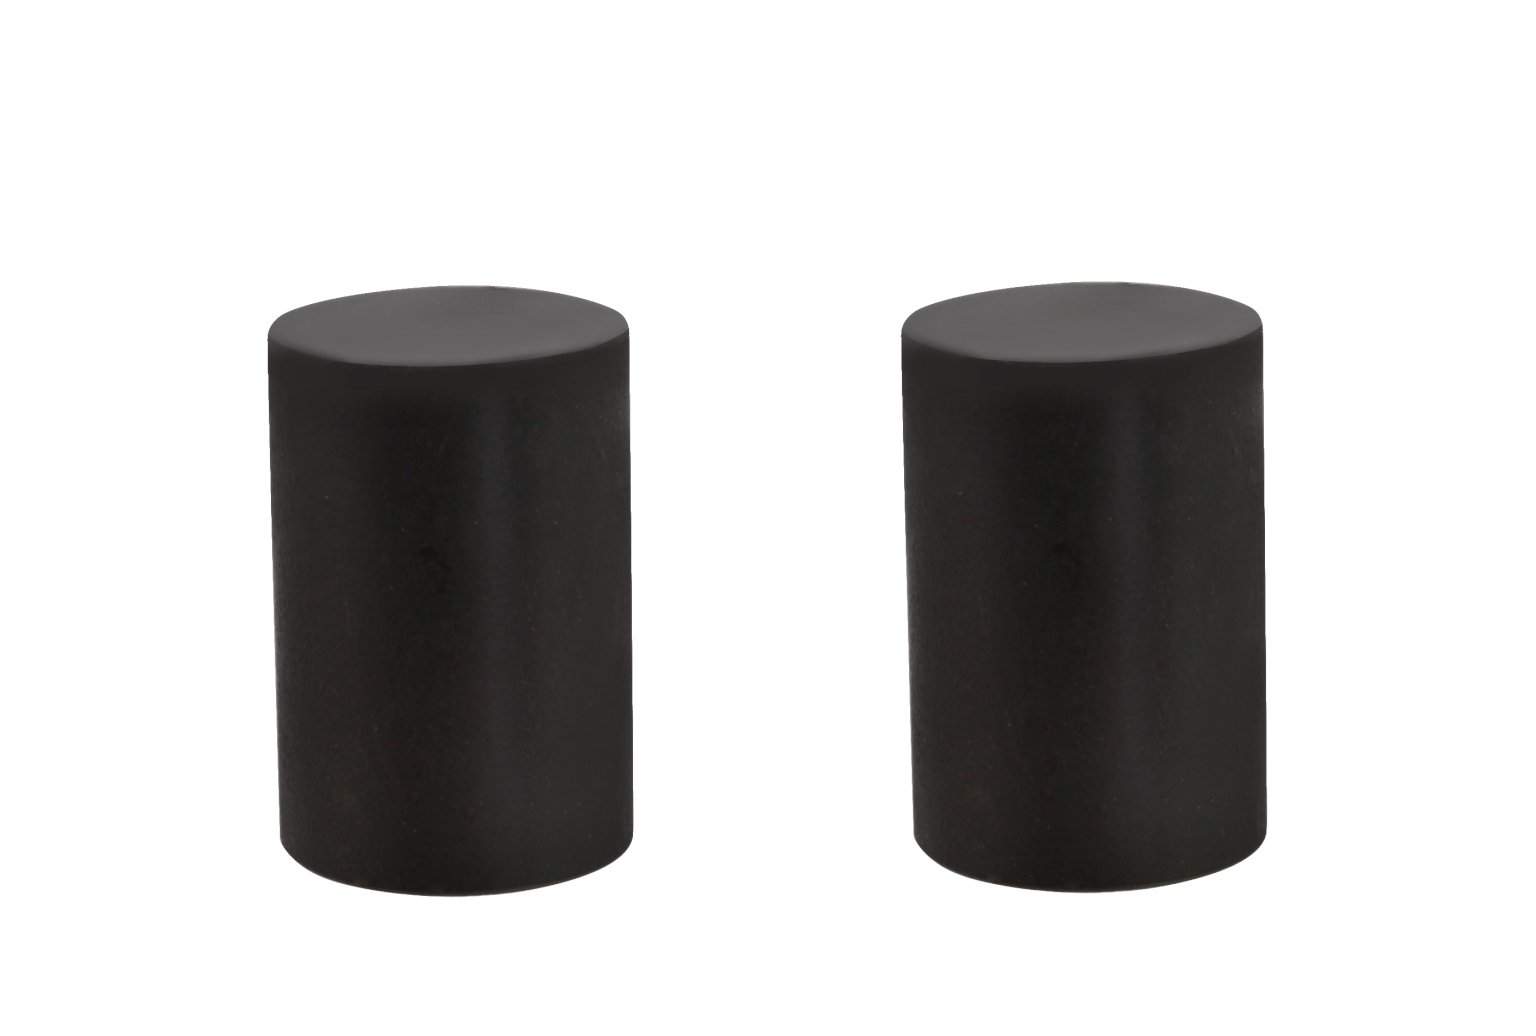 Aspen Creative 24019-32 Steel Lamp Finial Finish, 1 1/4'' Tall (2), 2 Pack, Oil Rubbed Bronze